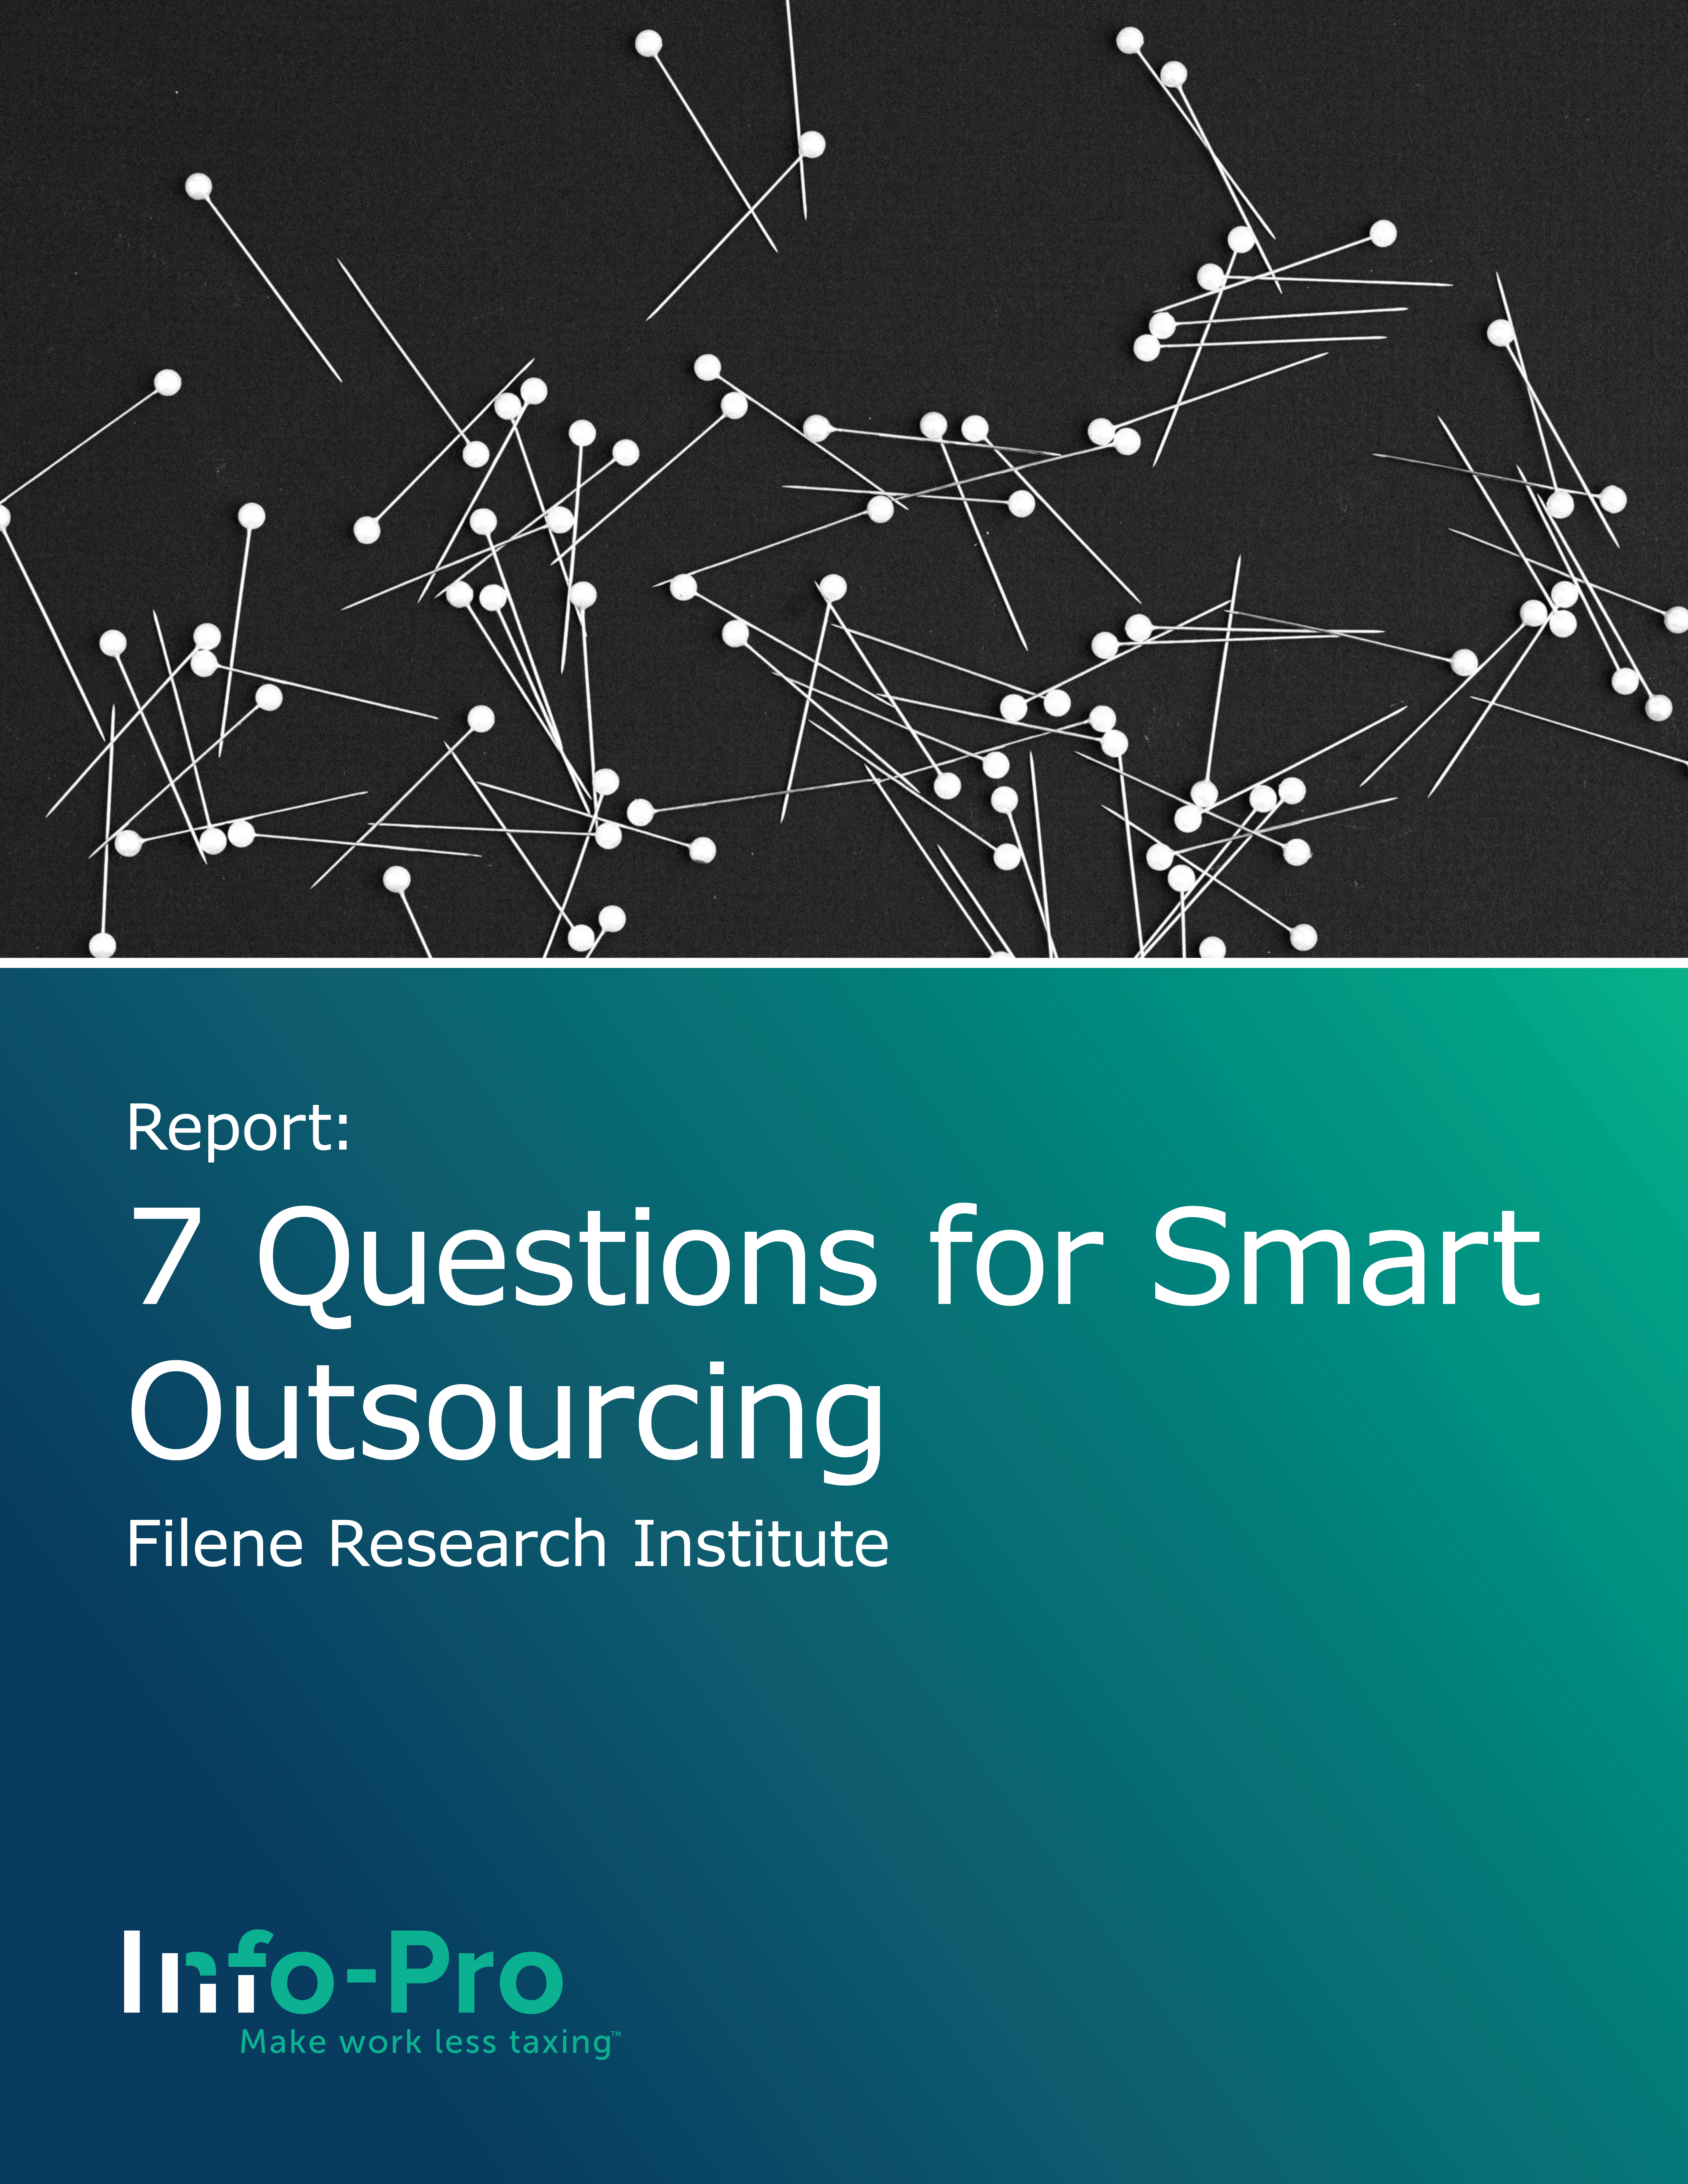 7 Questions for Smart Outsourcing